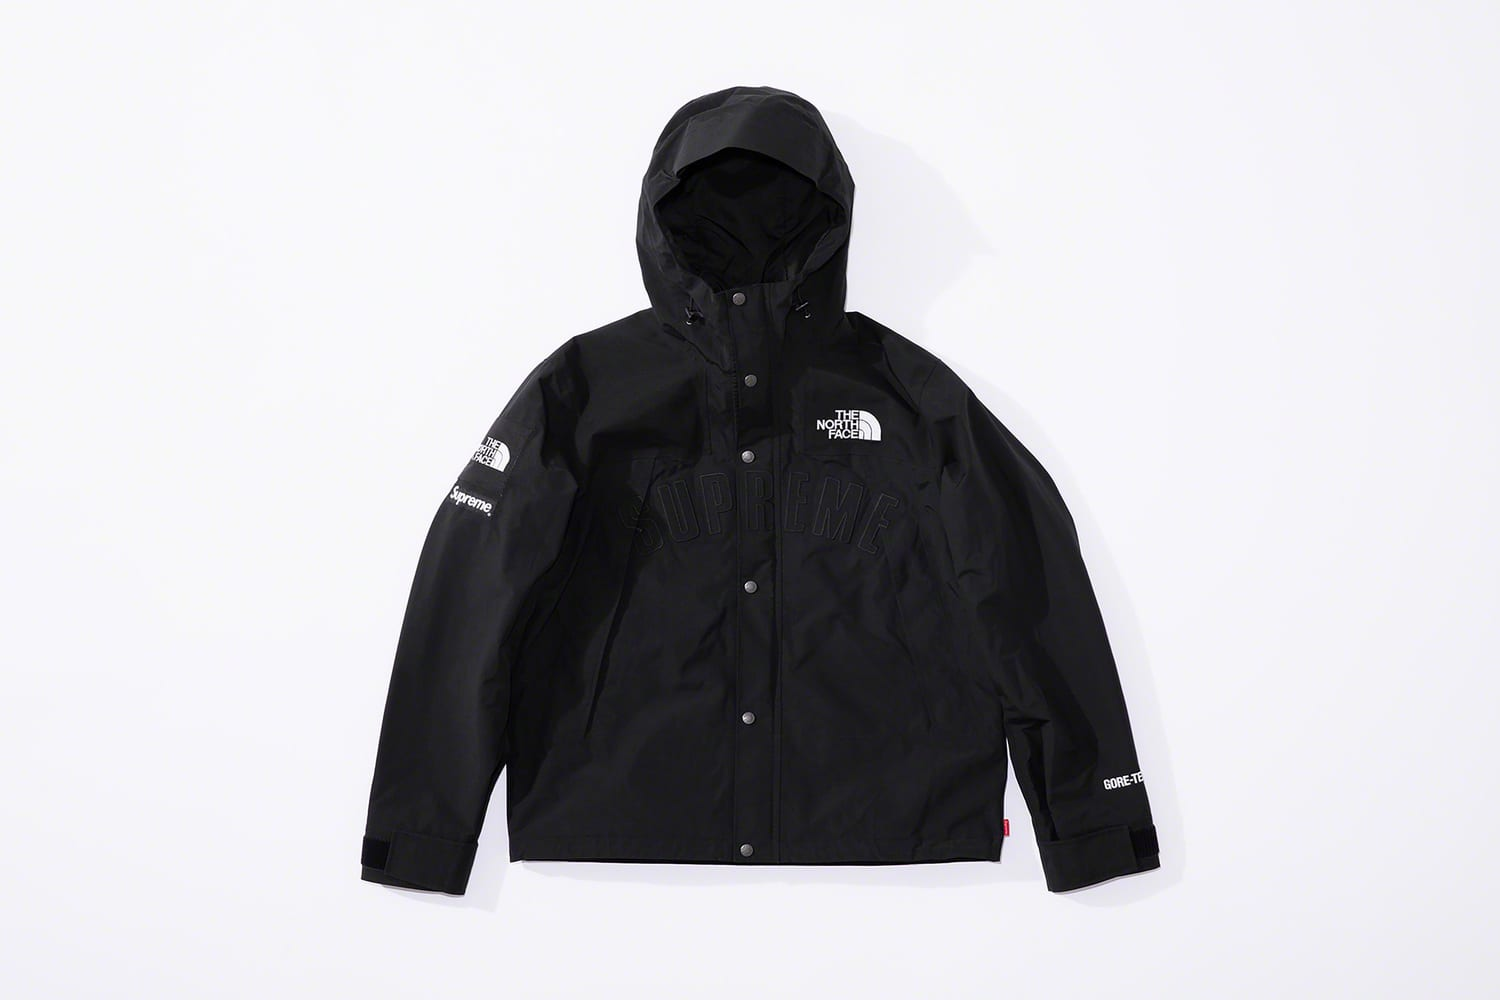 9202c0bca Supreme x The North Face Spring 2019 Collection | The Source